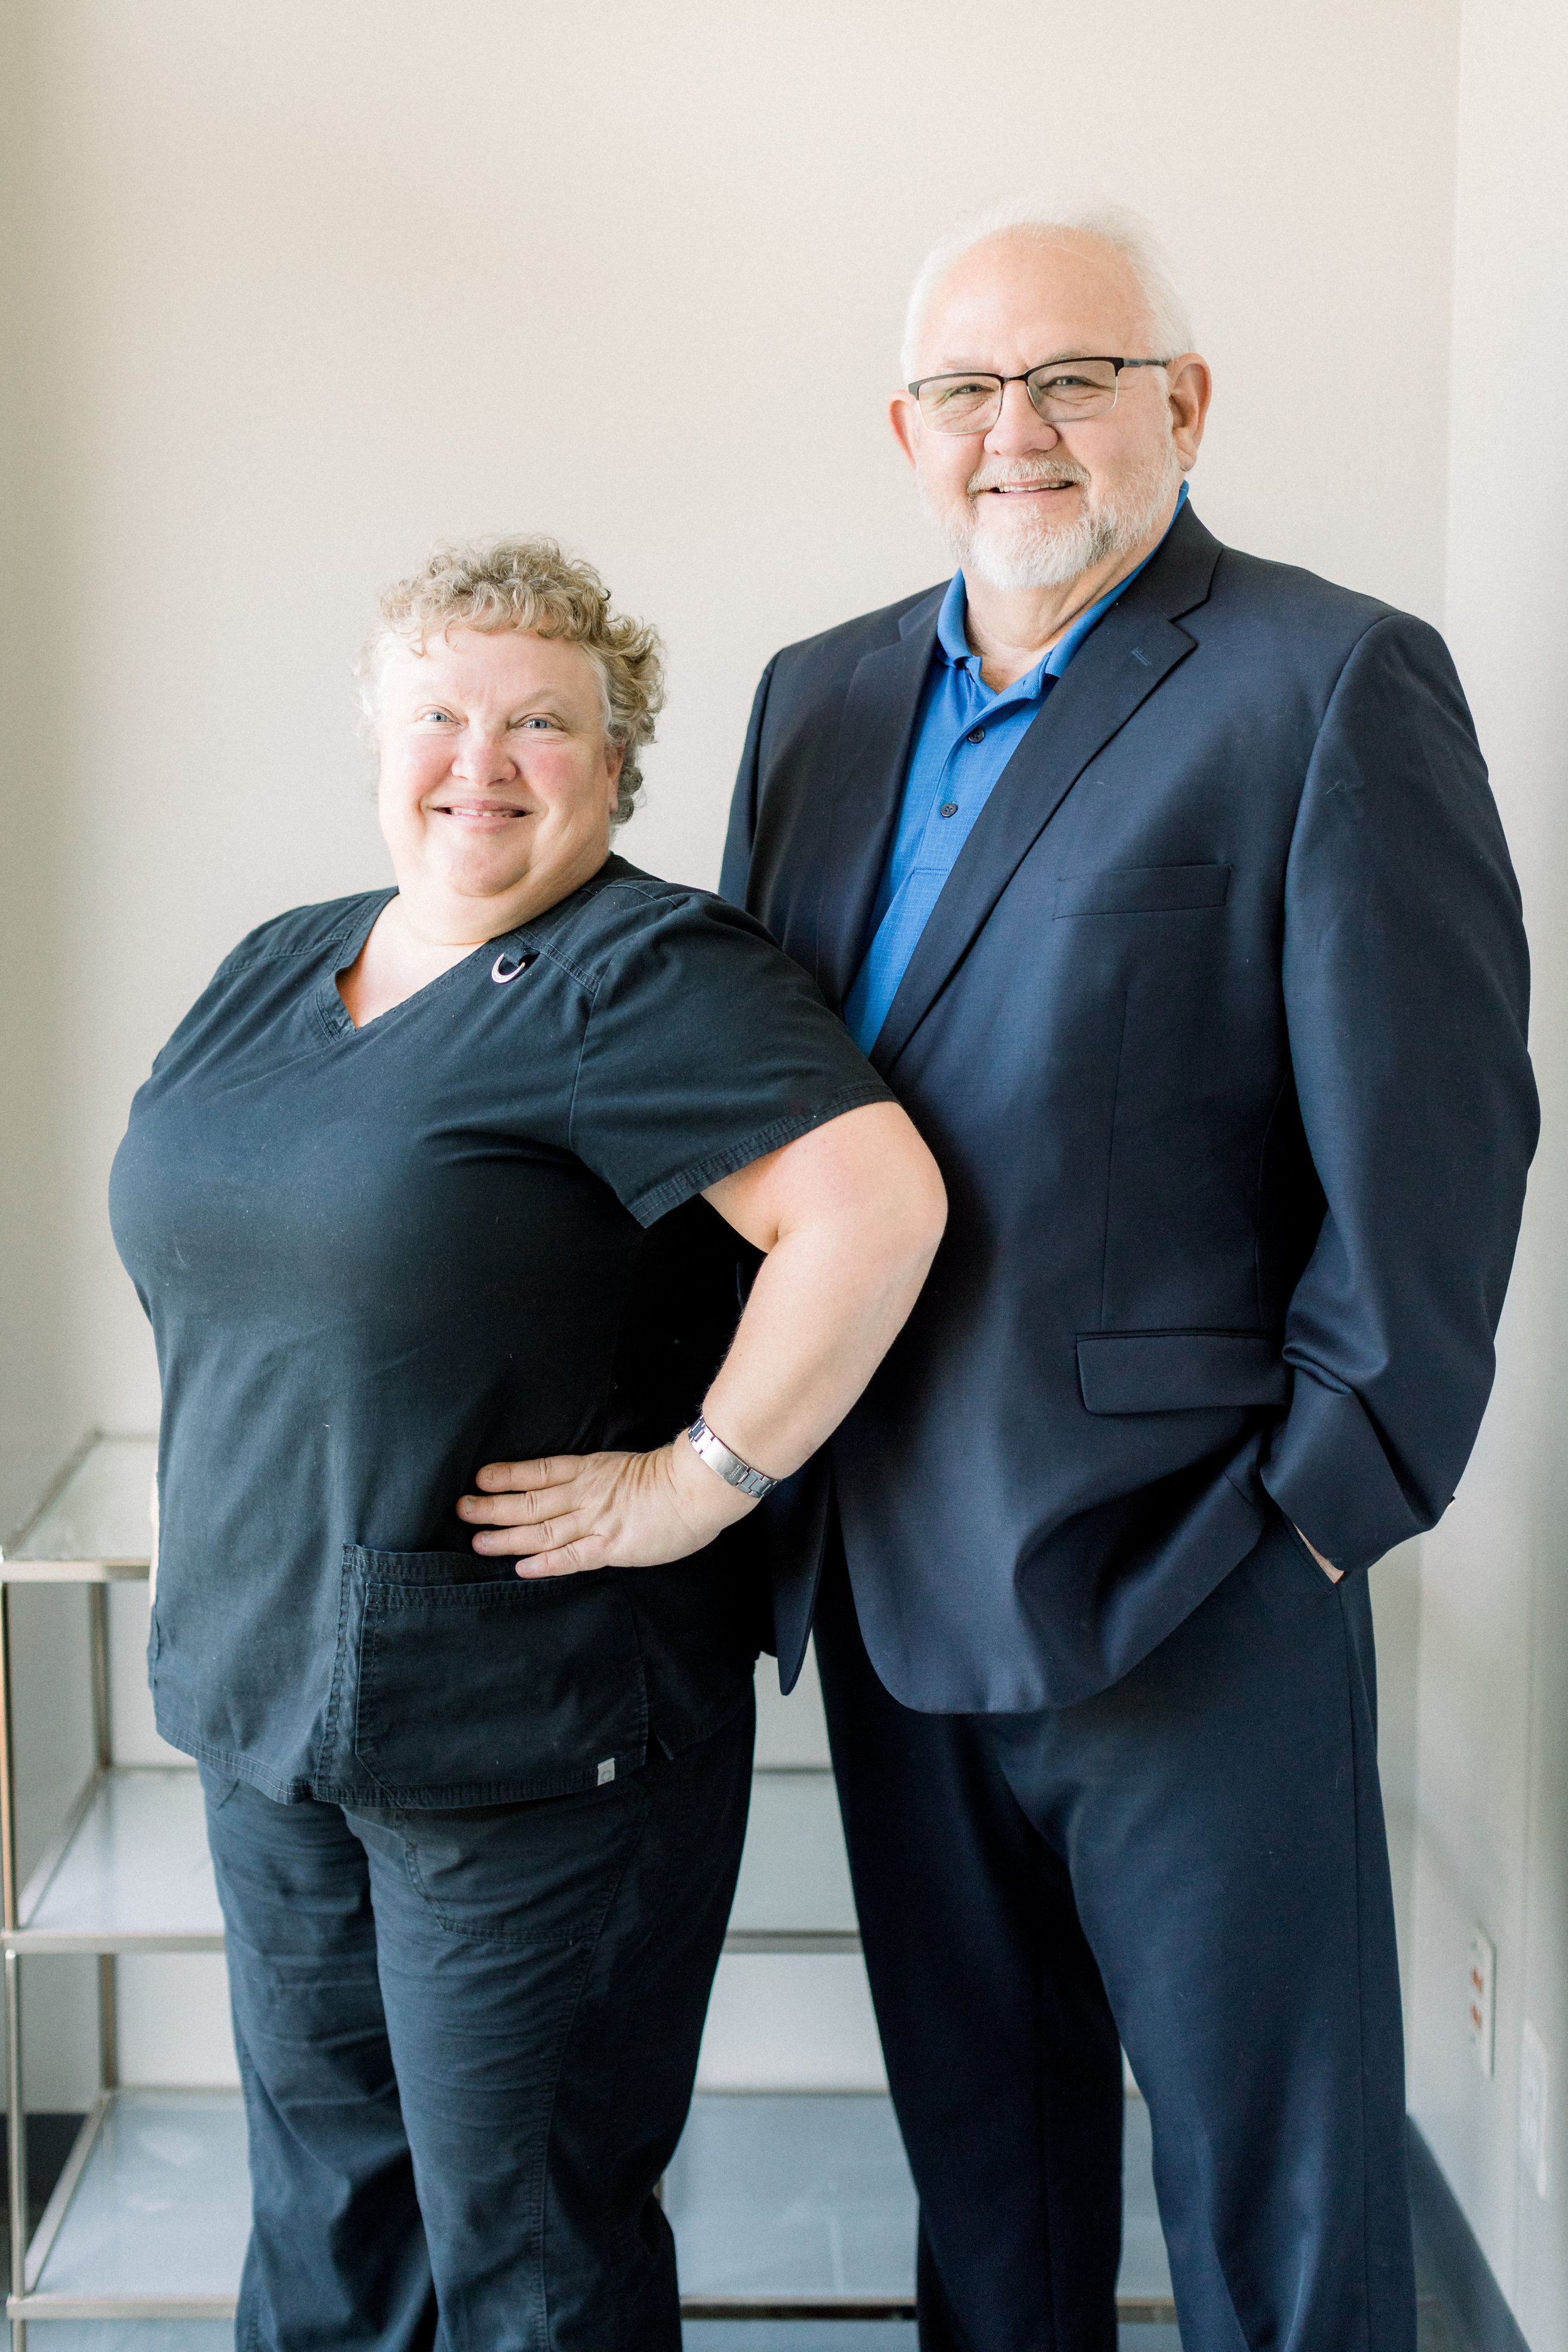 Meet The Experts: - Meet Dr. David Boles and his nurse, Tina Mangrum. This duo has worked alongside each other for over 26 years! Together they ensure the best possible outcomes for each patient. Dr. Boles is passionate about his work and takes pride in helping those achieve their aesthetic goals. He has been board certified in Family Practice since 1983 and was trained at the University of Mississippi, Kansas City of Osteopathic Medicine.Dr. Boles is also certified in Water-Assisted Liposuction and cosmetic injectables and has successfully performed over 3000 Water-assisted Liposuction procedures. Tina's compassion for patients and nurturing nature is seen in each procedure they perform. Schedule your complimentary consultation today by calling 931.245.0500.Read their full bio's HERE.